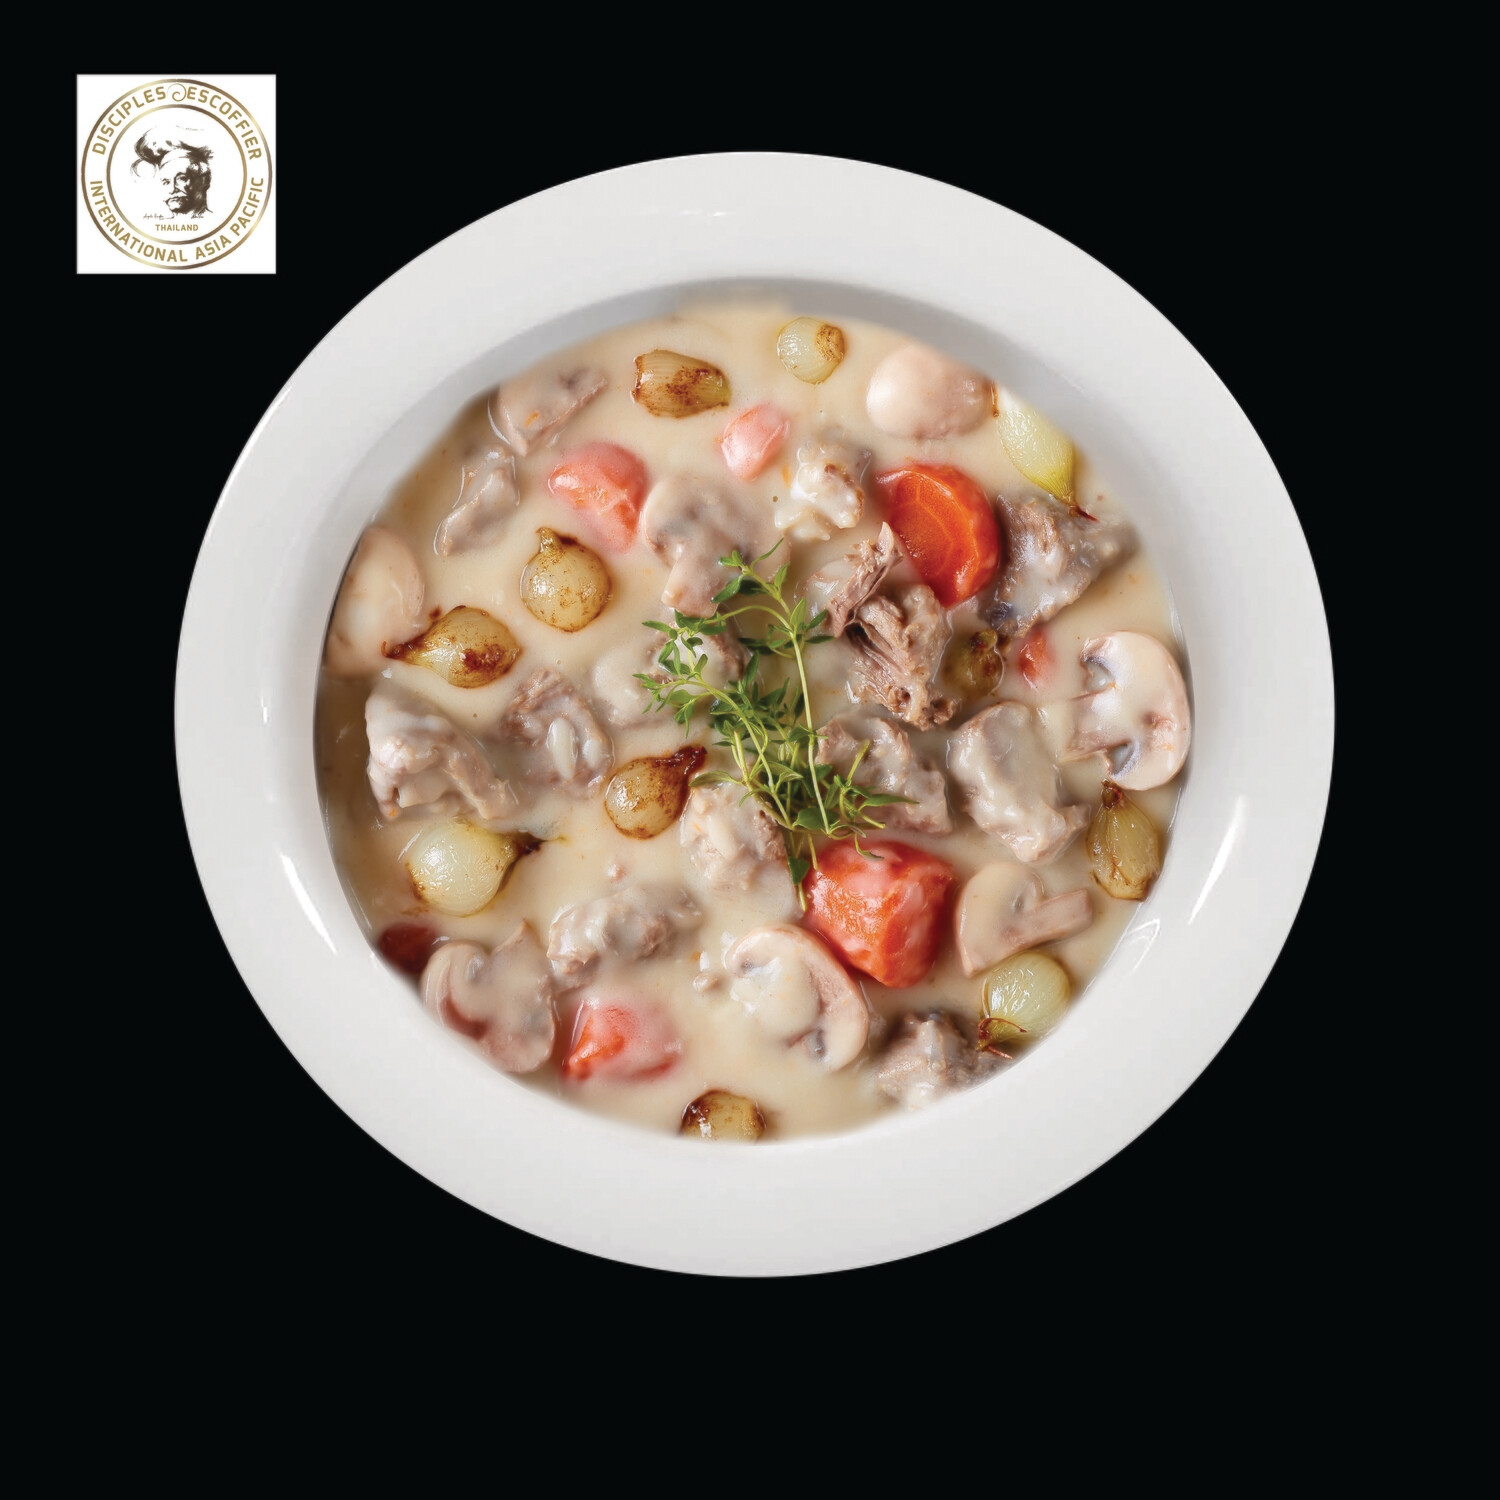 BLANQUETTE DE VEAU (veal in cream sauce) 1 PORTION deep-frozen